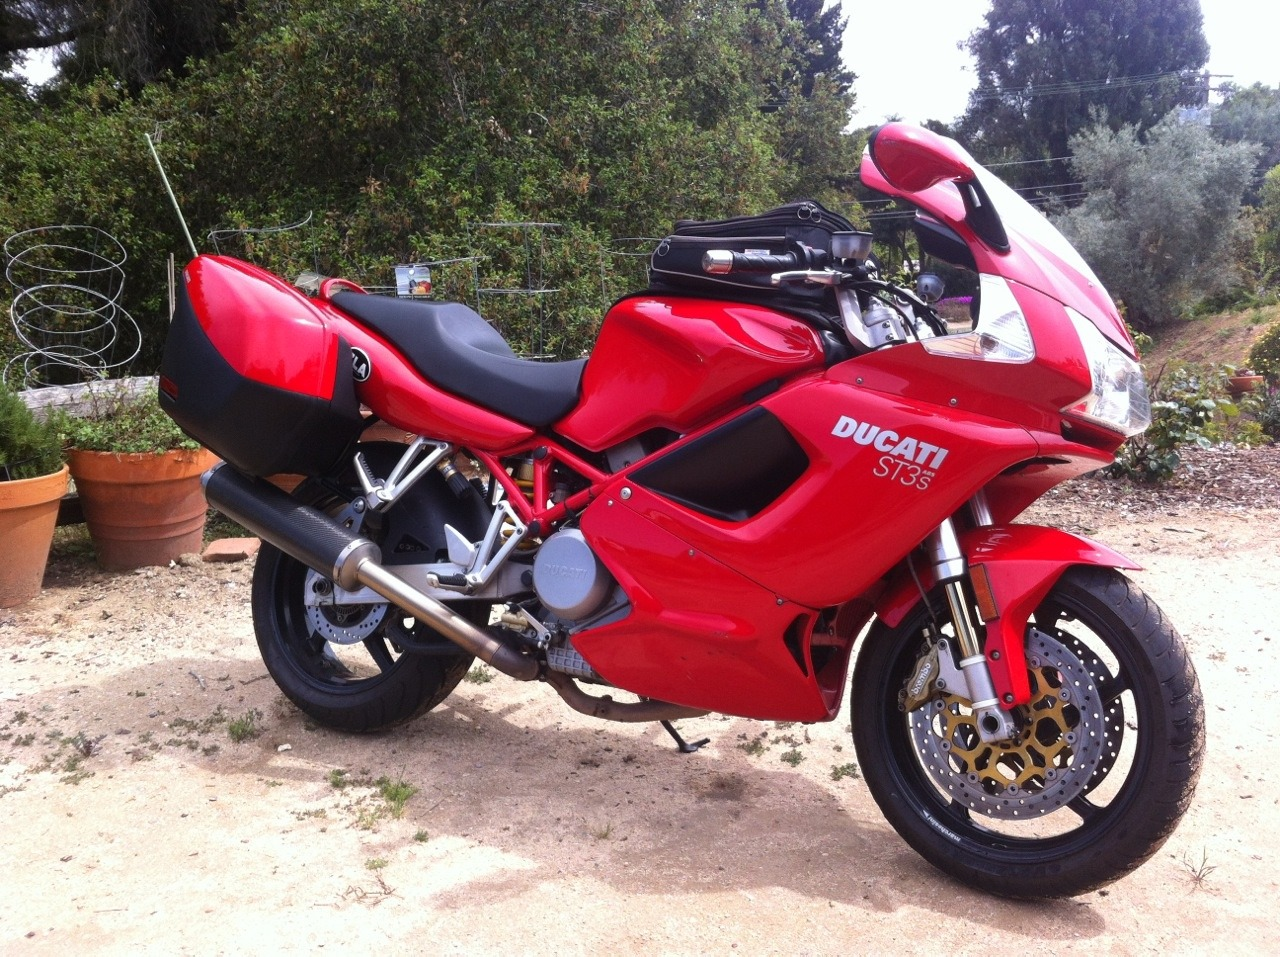 2007 Ducati St 3 S ABS, motorcycle listing